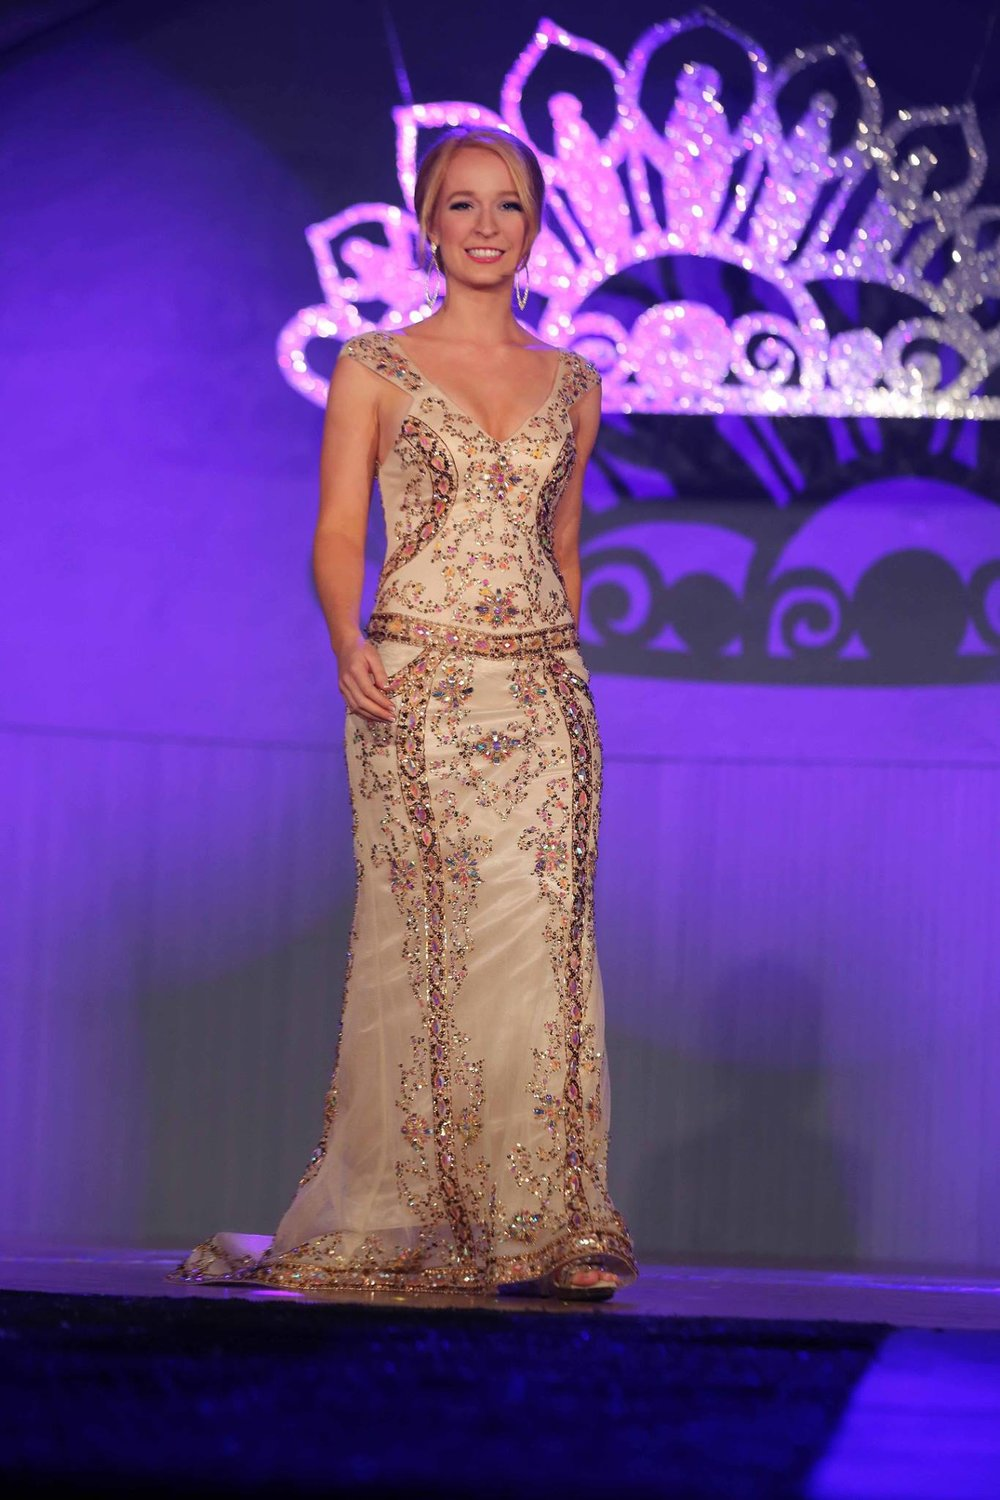 Evening Wear - National Sweetheart Pageant